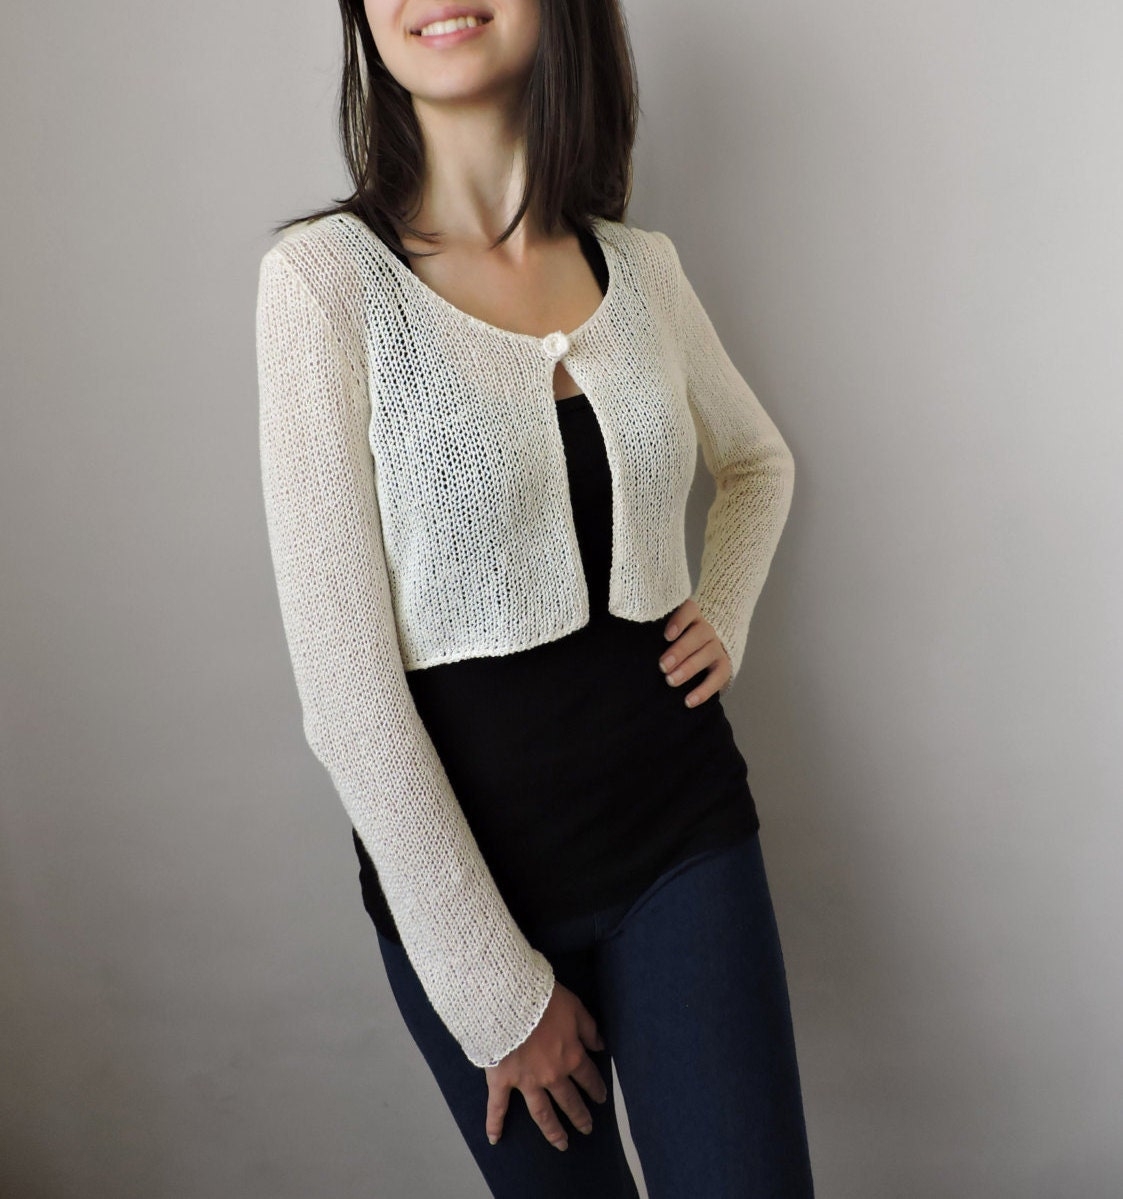 Hand knit bolero Bridal cardigan Cropped cardigan Knit crop